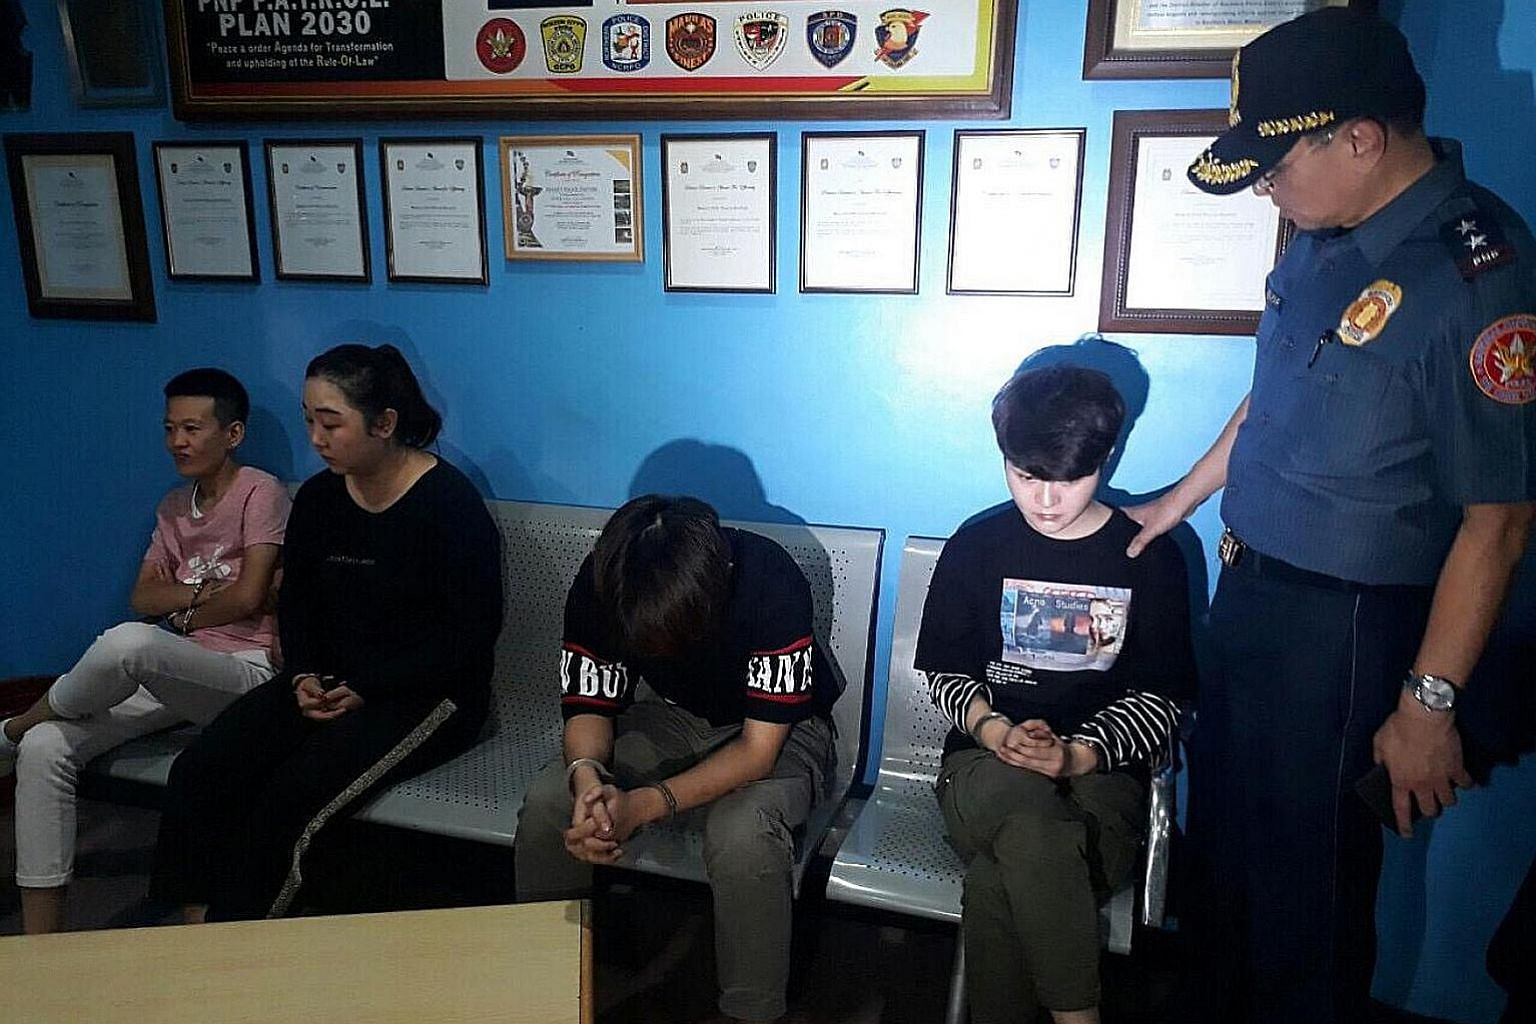 The four suspects (clockwise from top left) Zhang Chuquan, Zhang Chuning, Wang Xue and Zhang Xixi, and in custody at a police station in Makati (left).